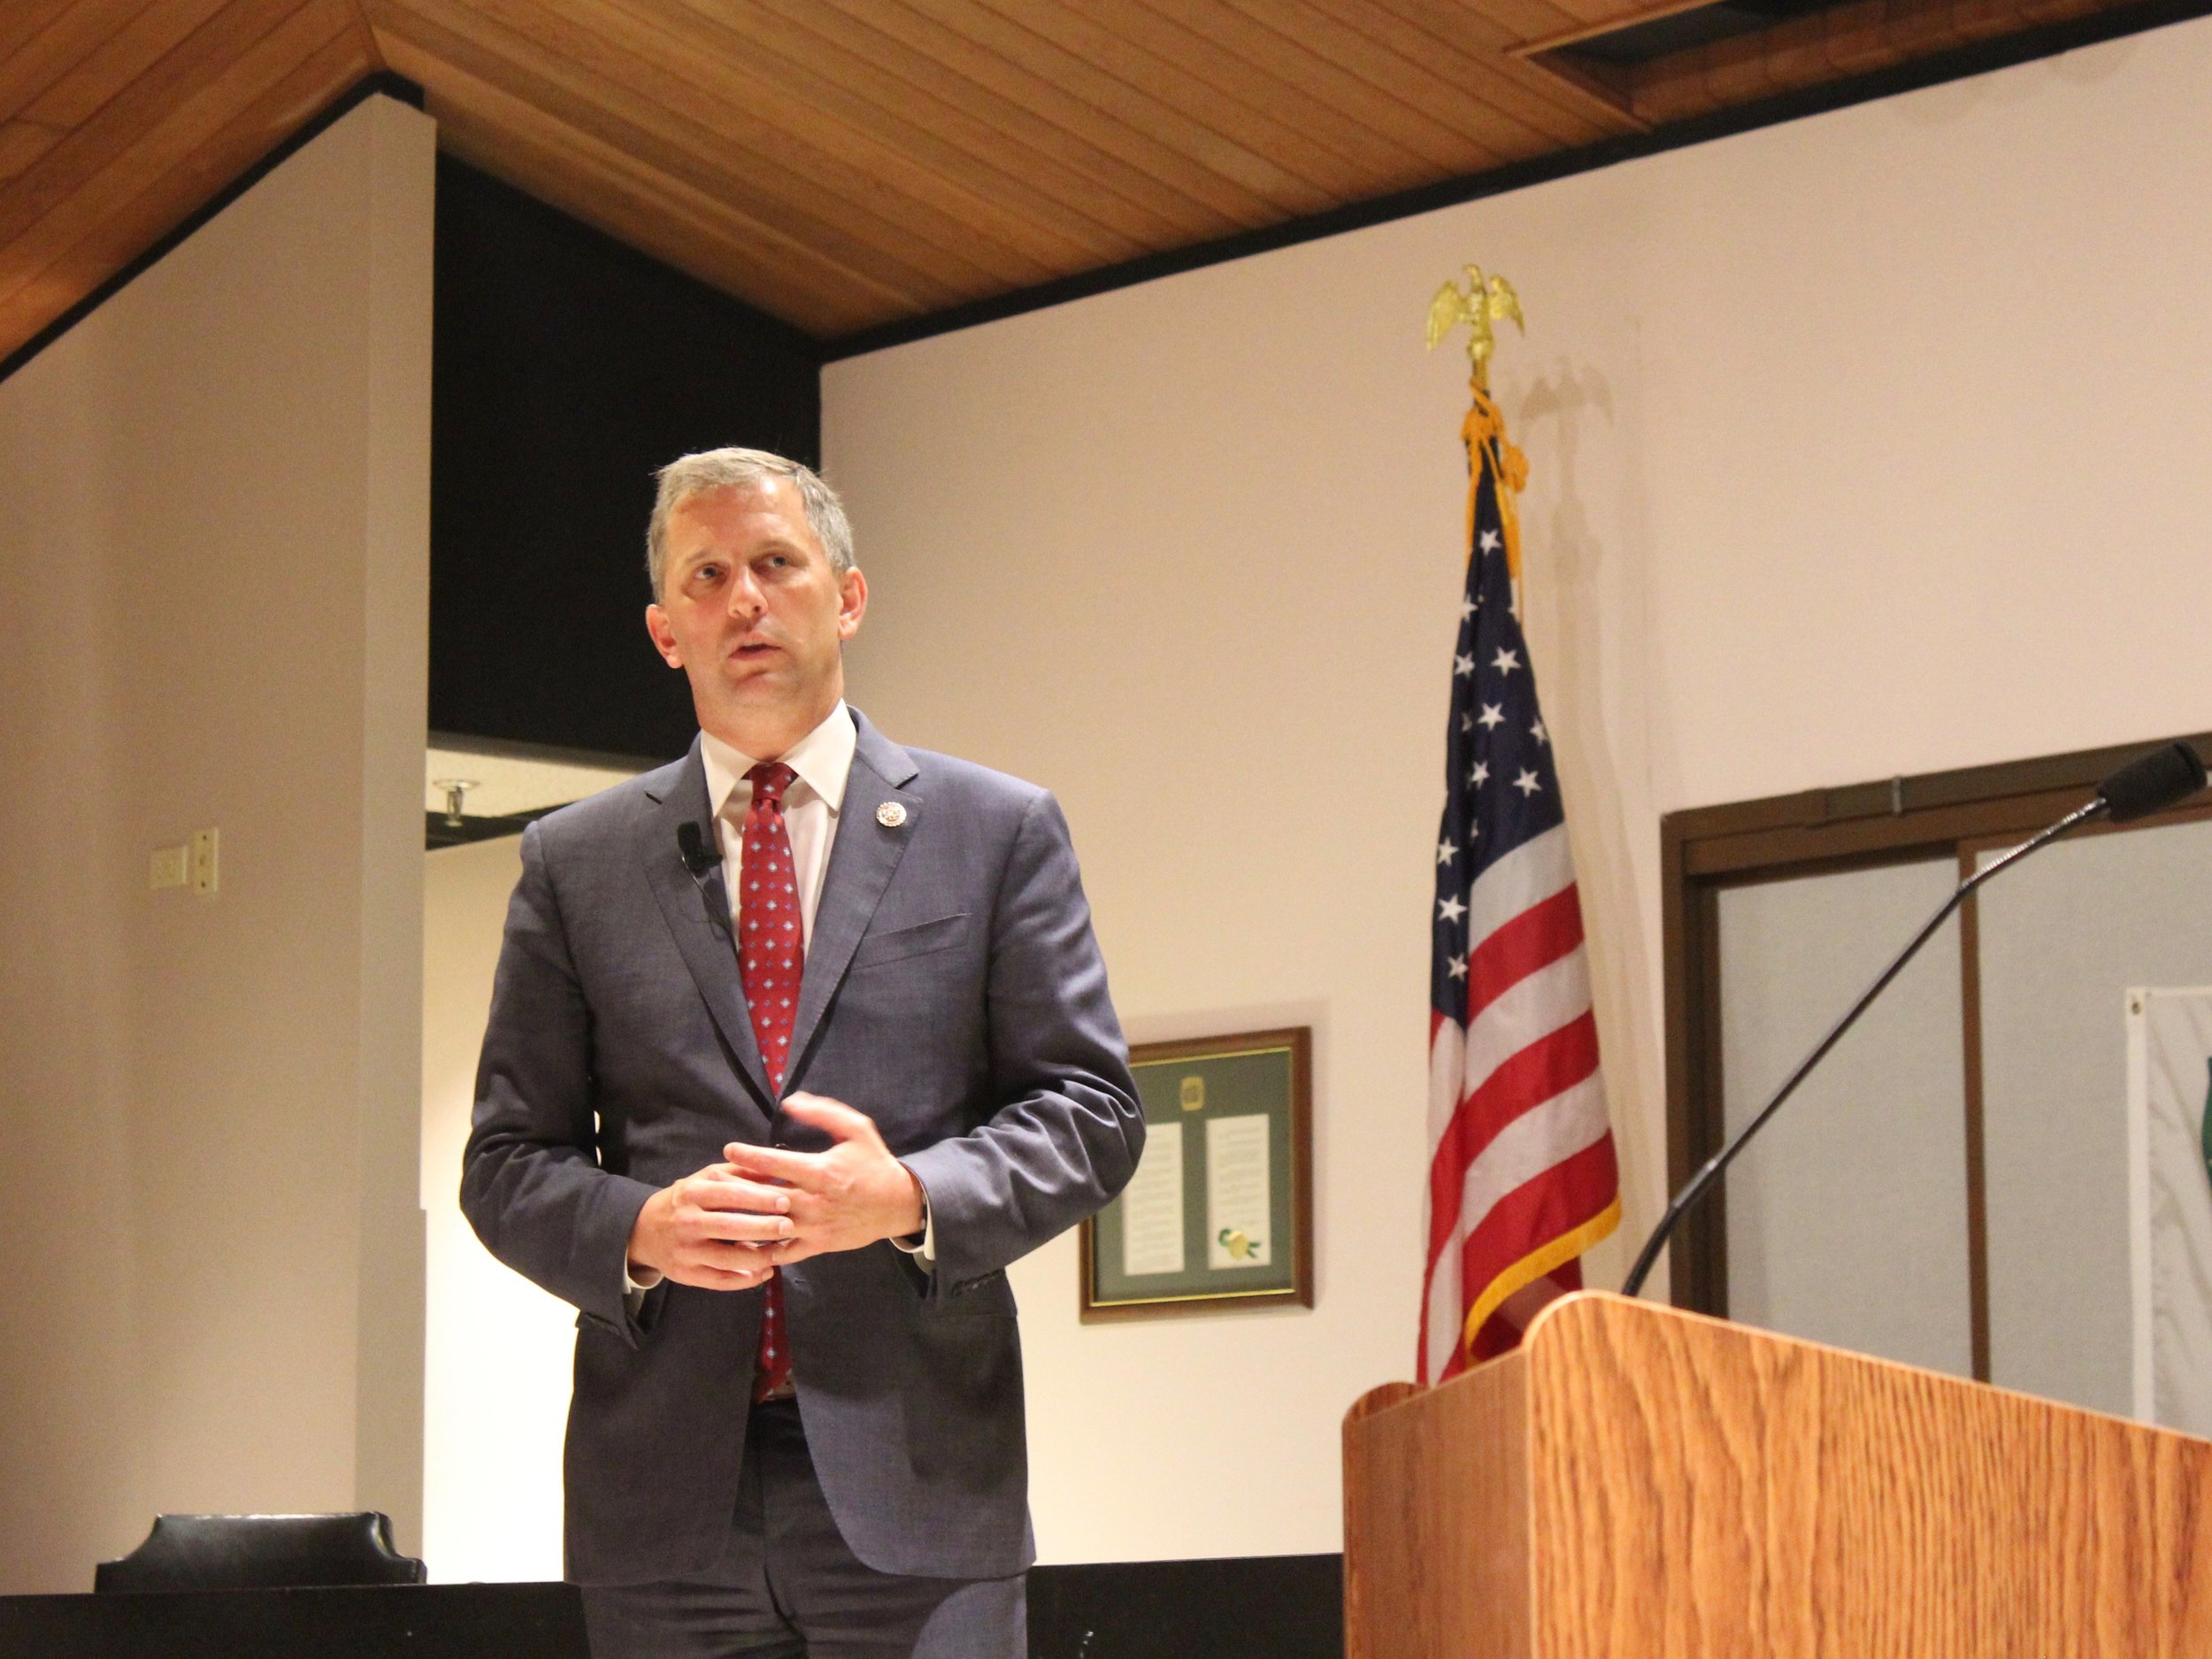 U.S. Rep. Sean Casten addresses a packed house at the Downers Grove Village Hall Wednesday. (One Illinois/Ted Cox)